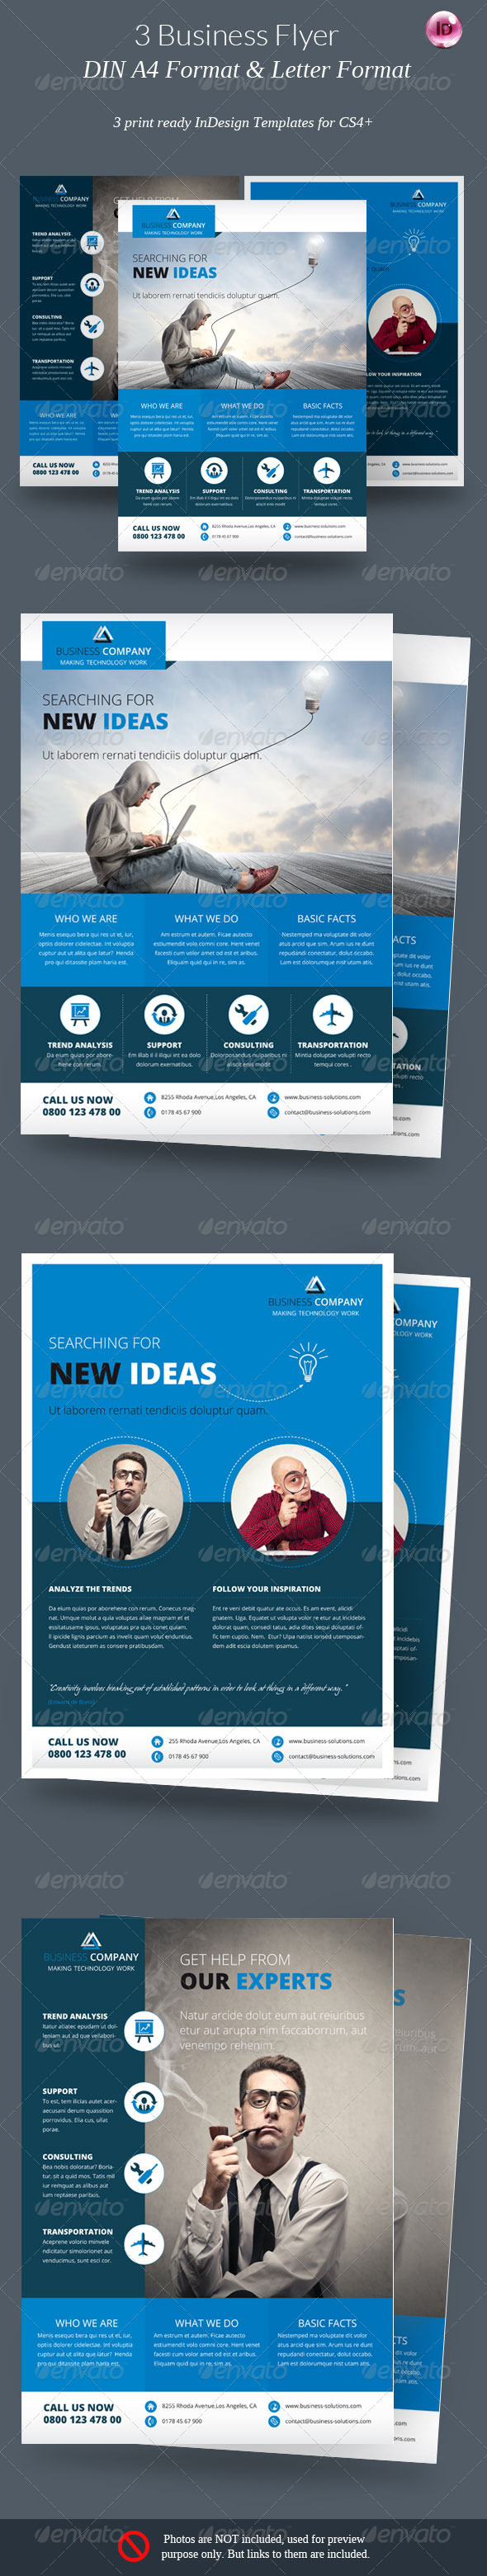 GraphicRiver 3 Business Flyer 6733462